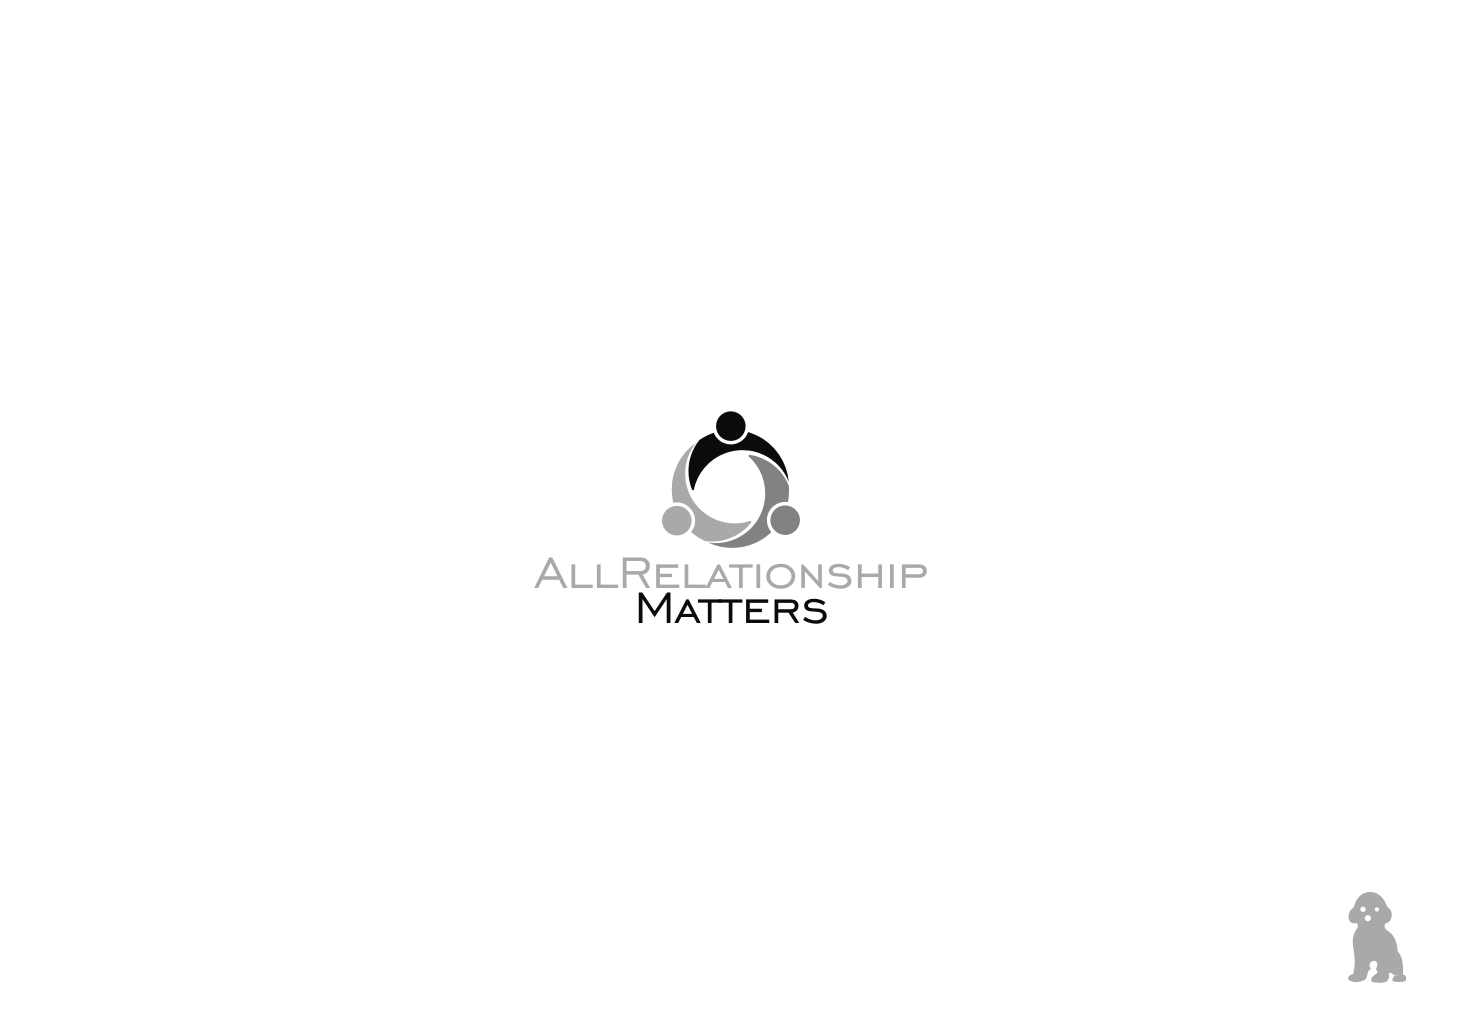 Create the next logo for All Relationship Matters